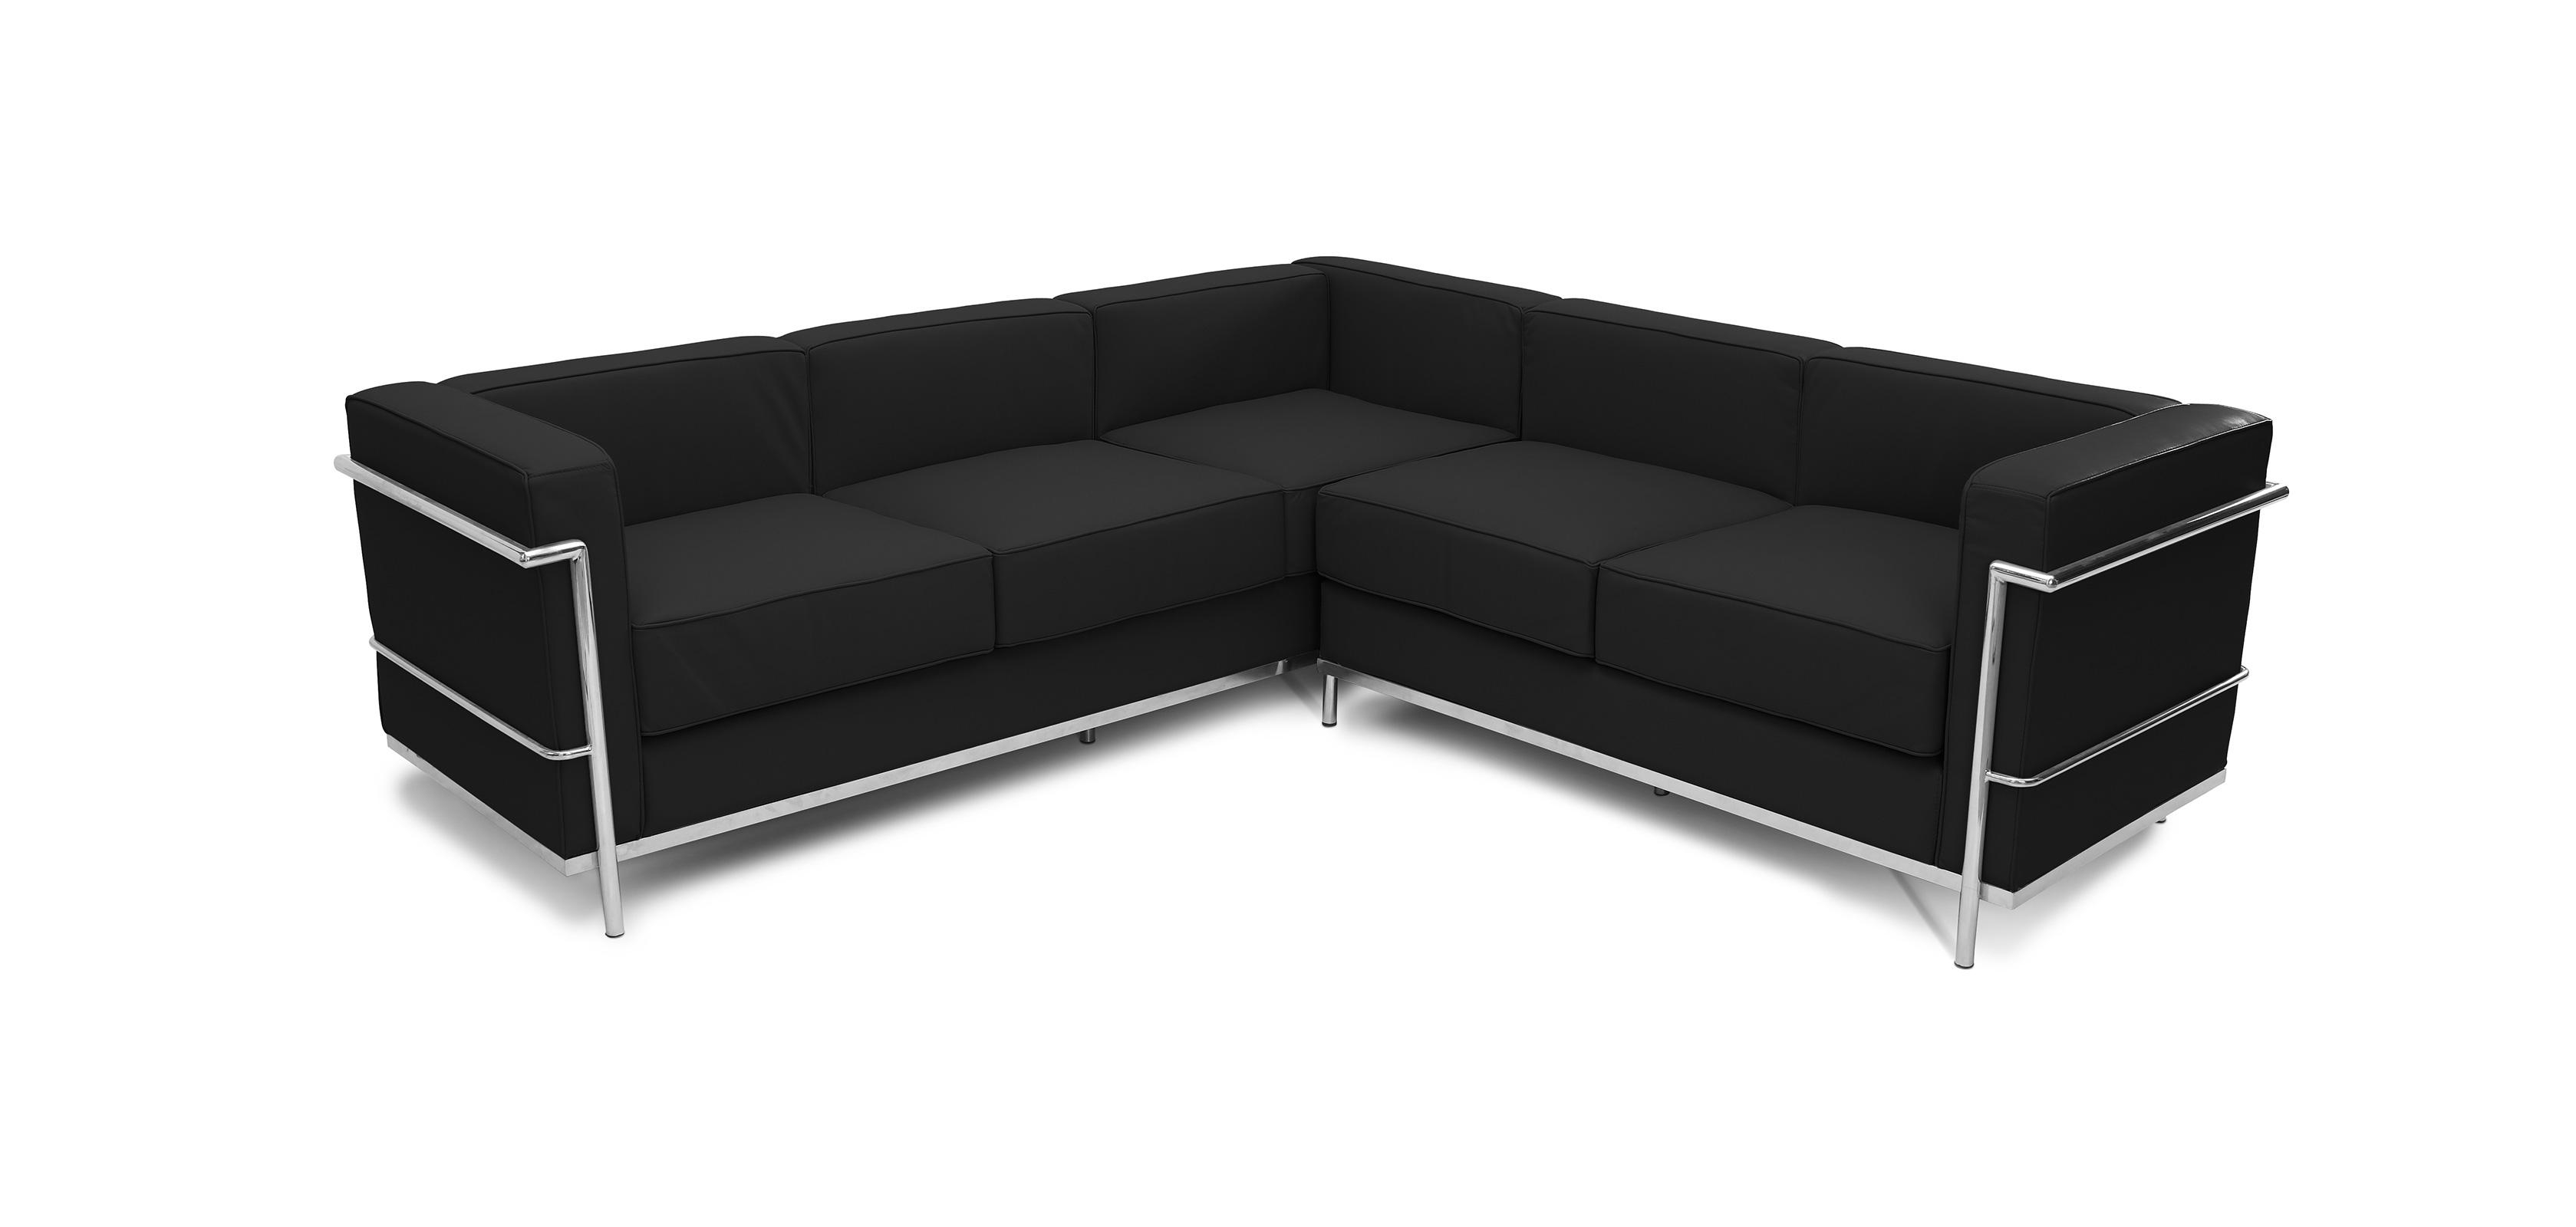 Leather Corner Sofa Designs Top Preferred Home Design With Regard To Leather Corner Sofas (Image 10 of 20)